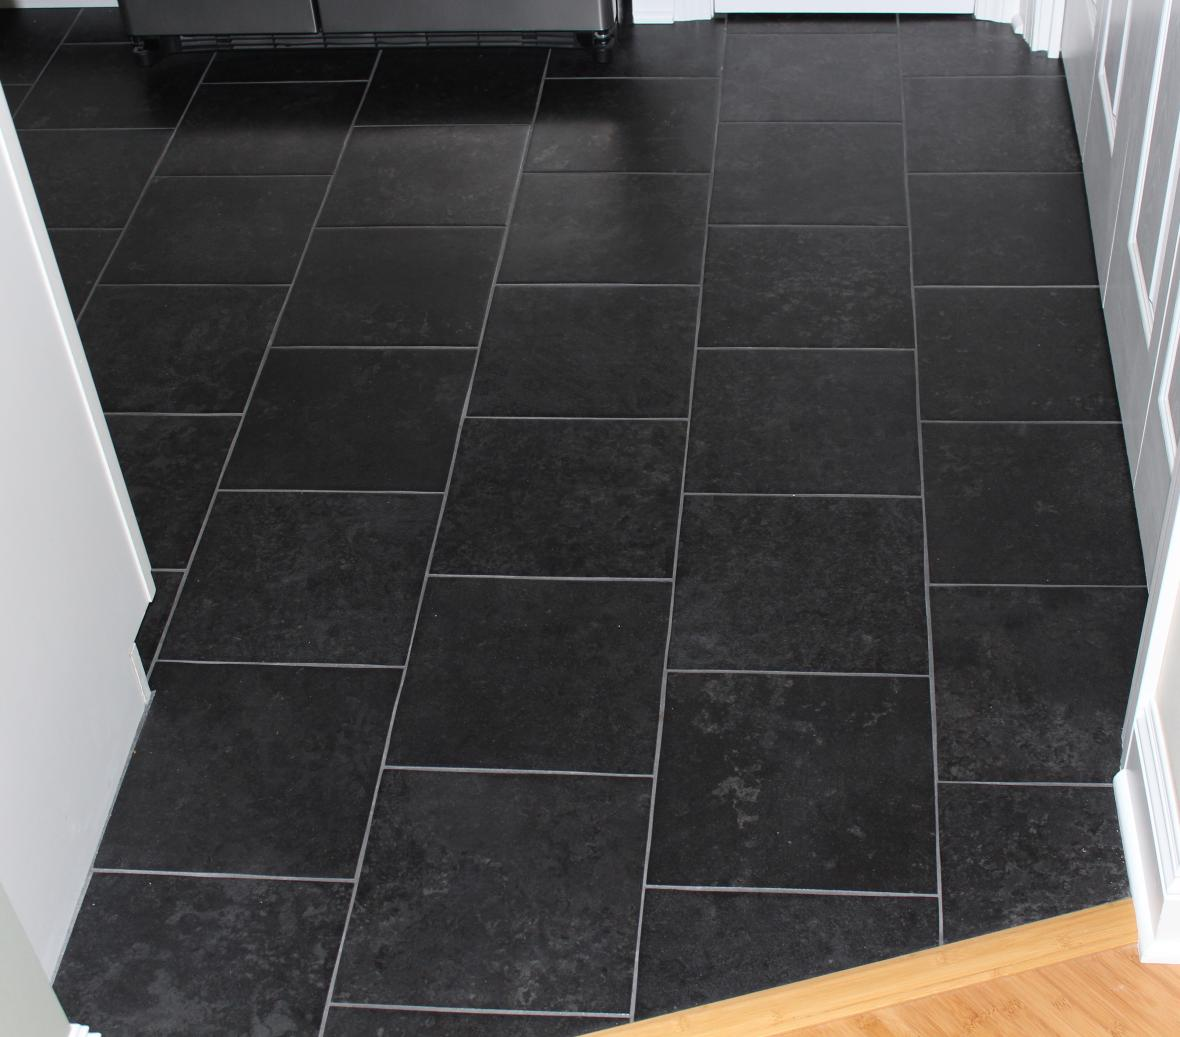 Read More About Black Tile Fireplace Black Porcelain Tile Floor